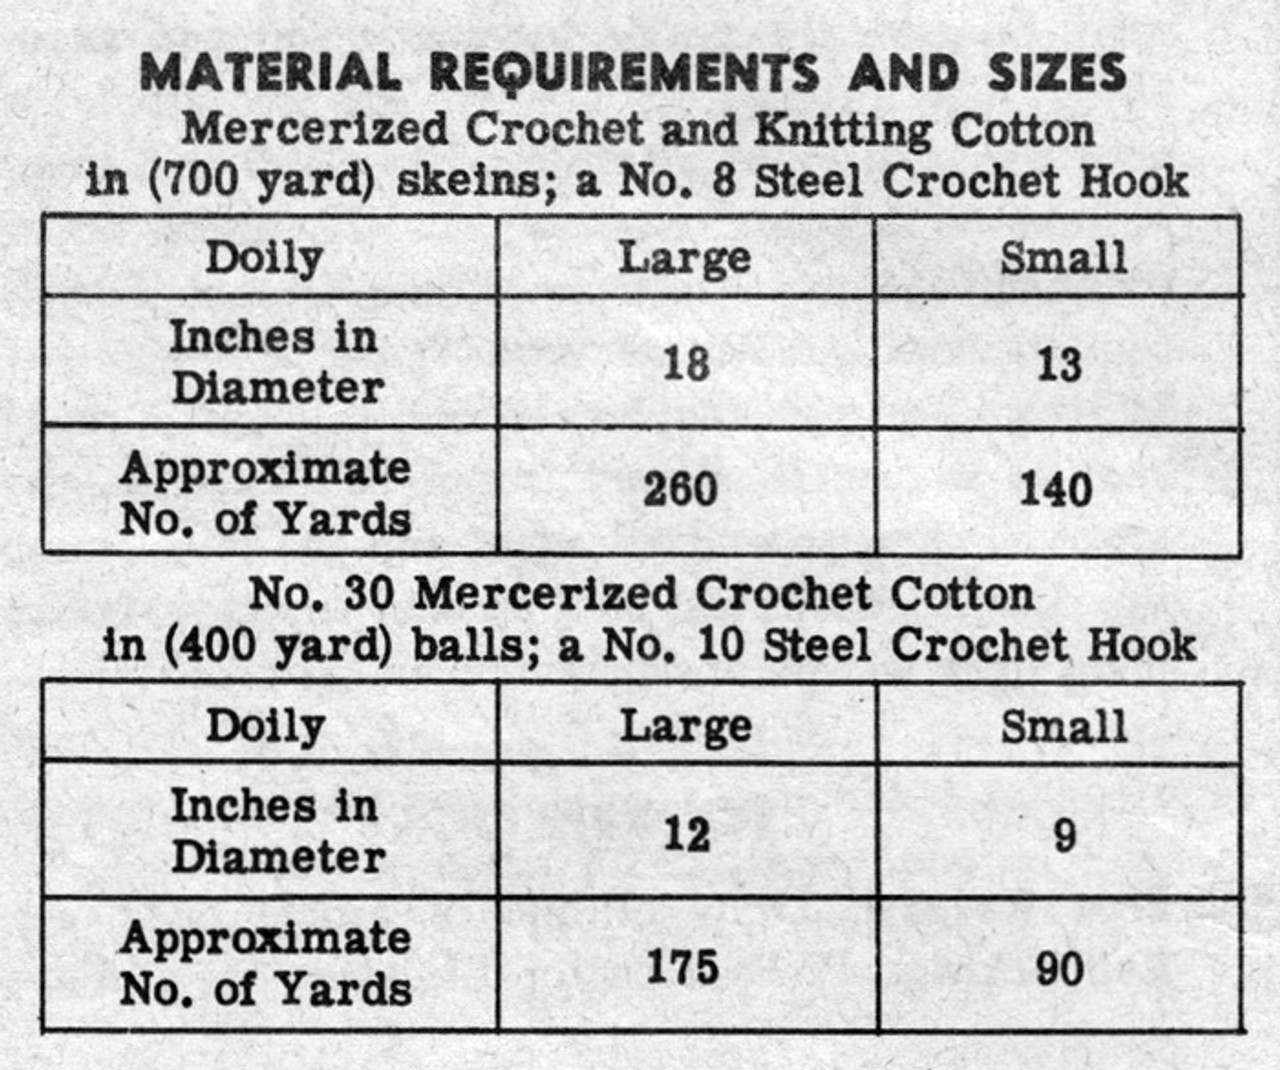 Sun Doily Crochet Material Requirements